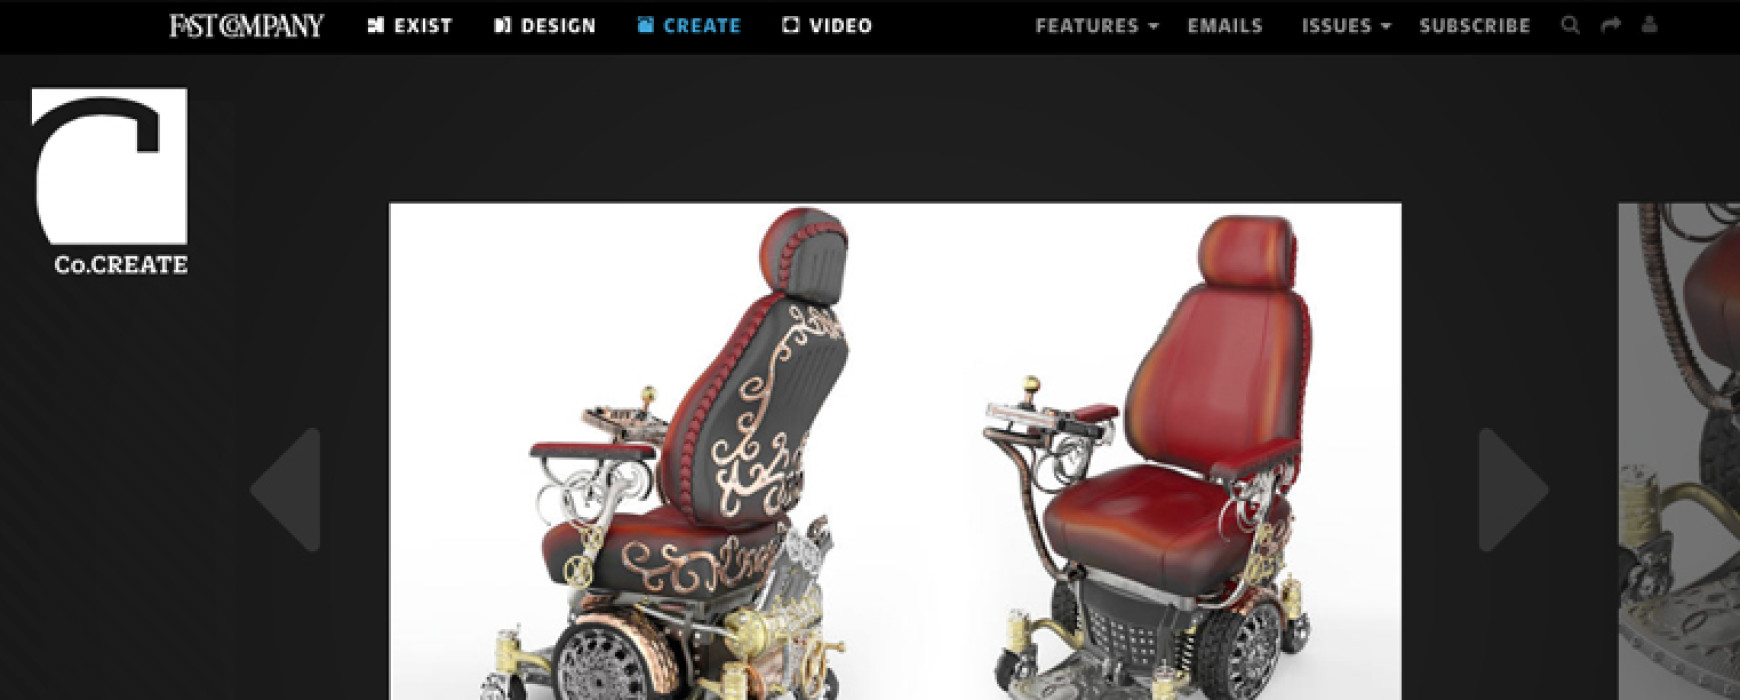 FastCompany : SEE WHEELCHAIRS REIMAGINED AS TRICKED-OUT STEAMPUNK RIDES